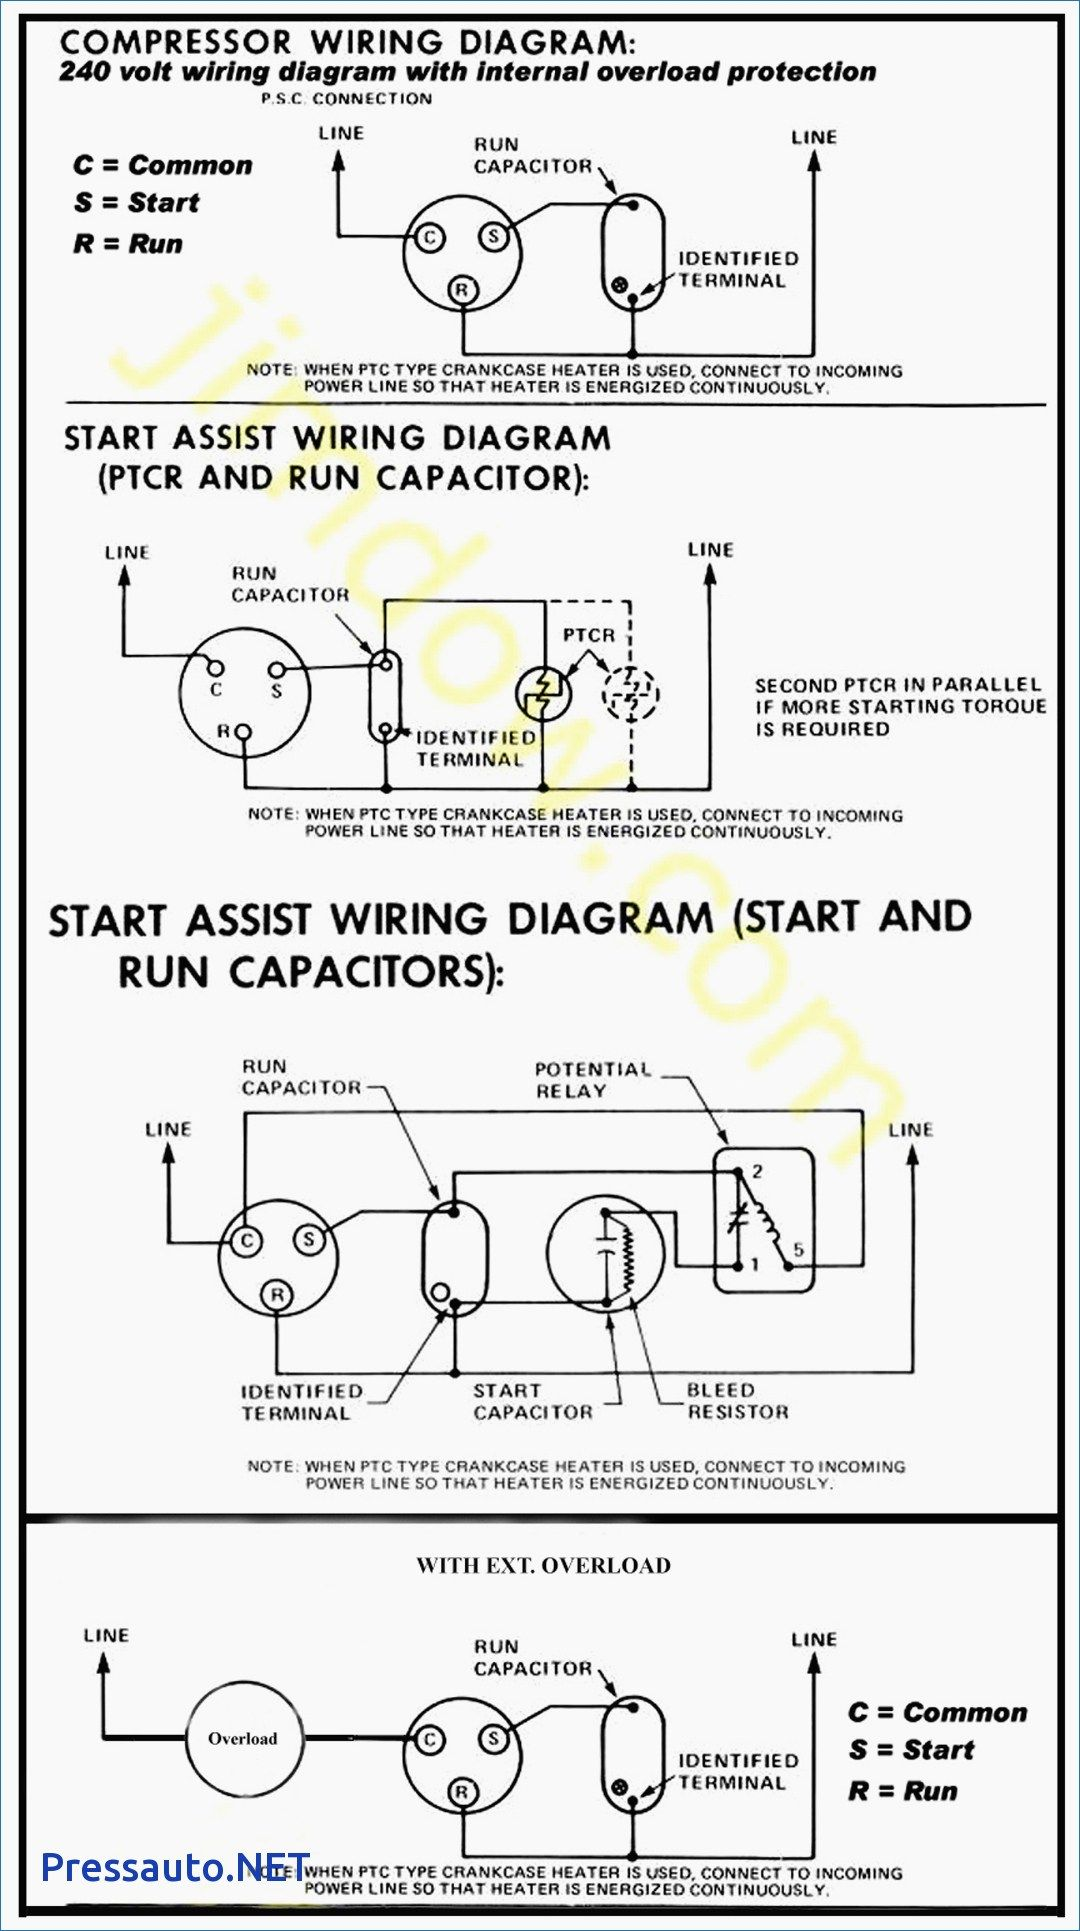 Ac Hard Start Kit Wiring Diagram - Wiring Diagrams Hidden Ac Capacitor Wiring Diagram on